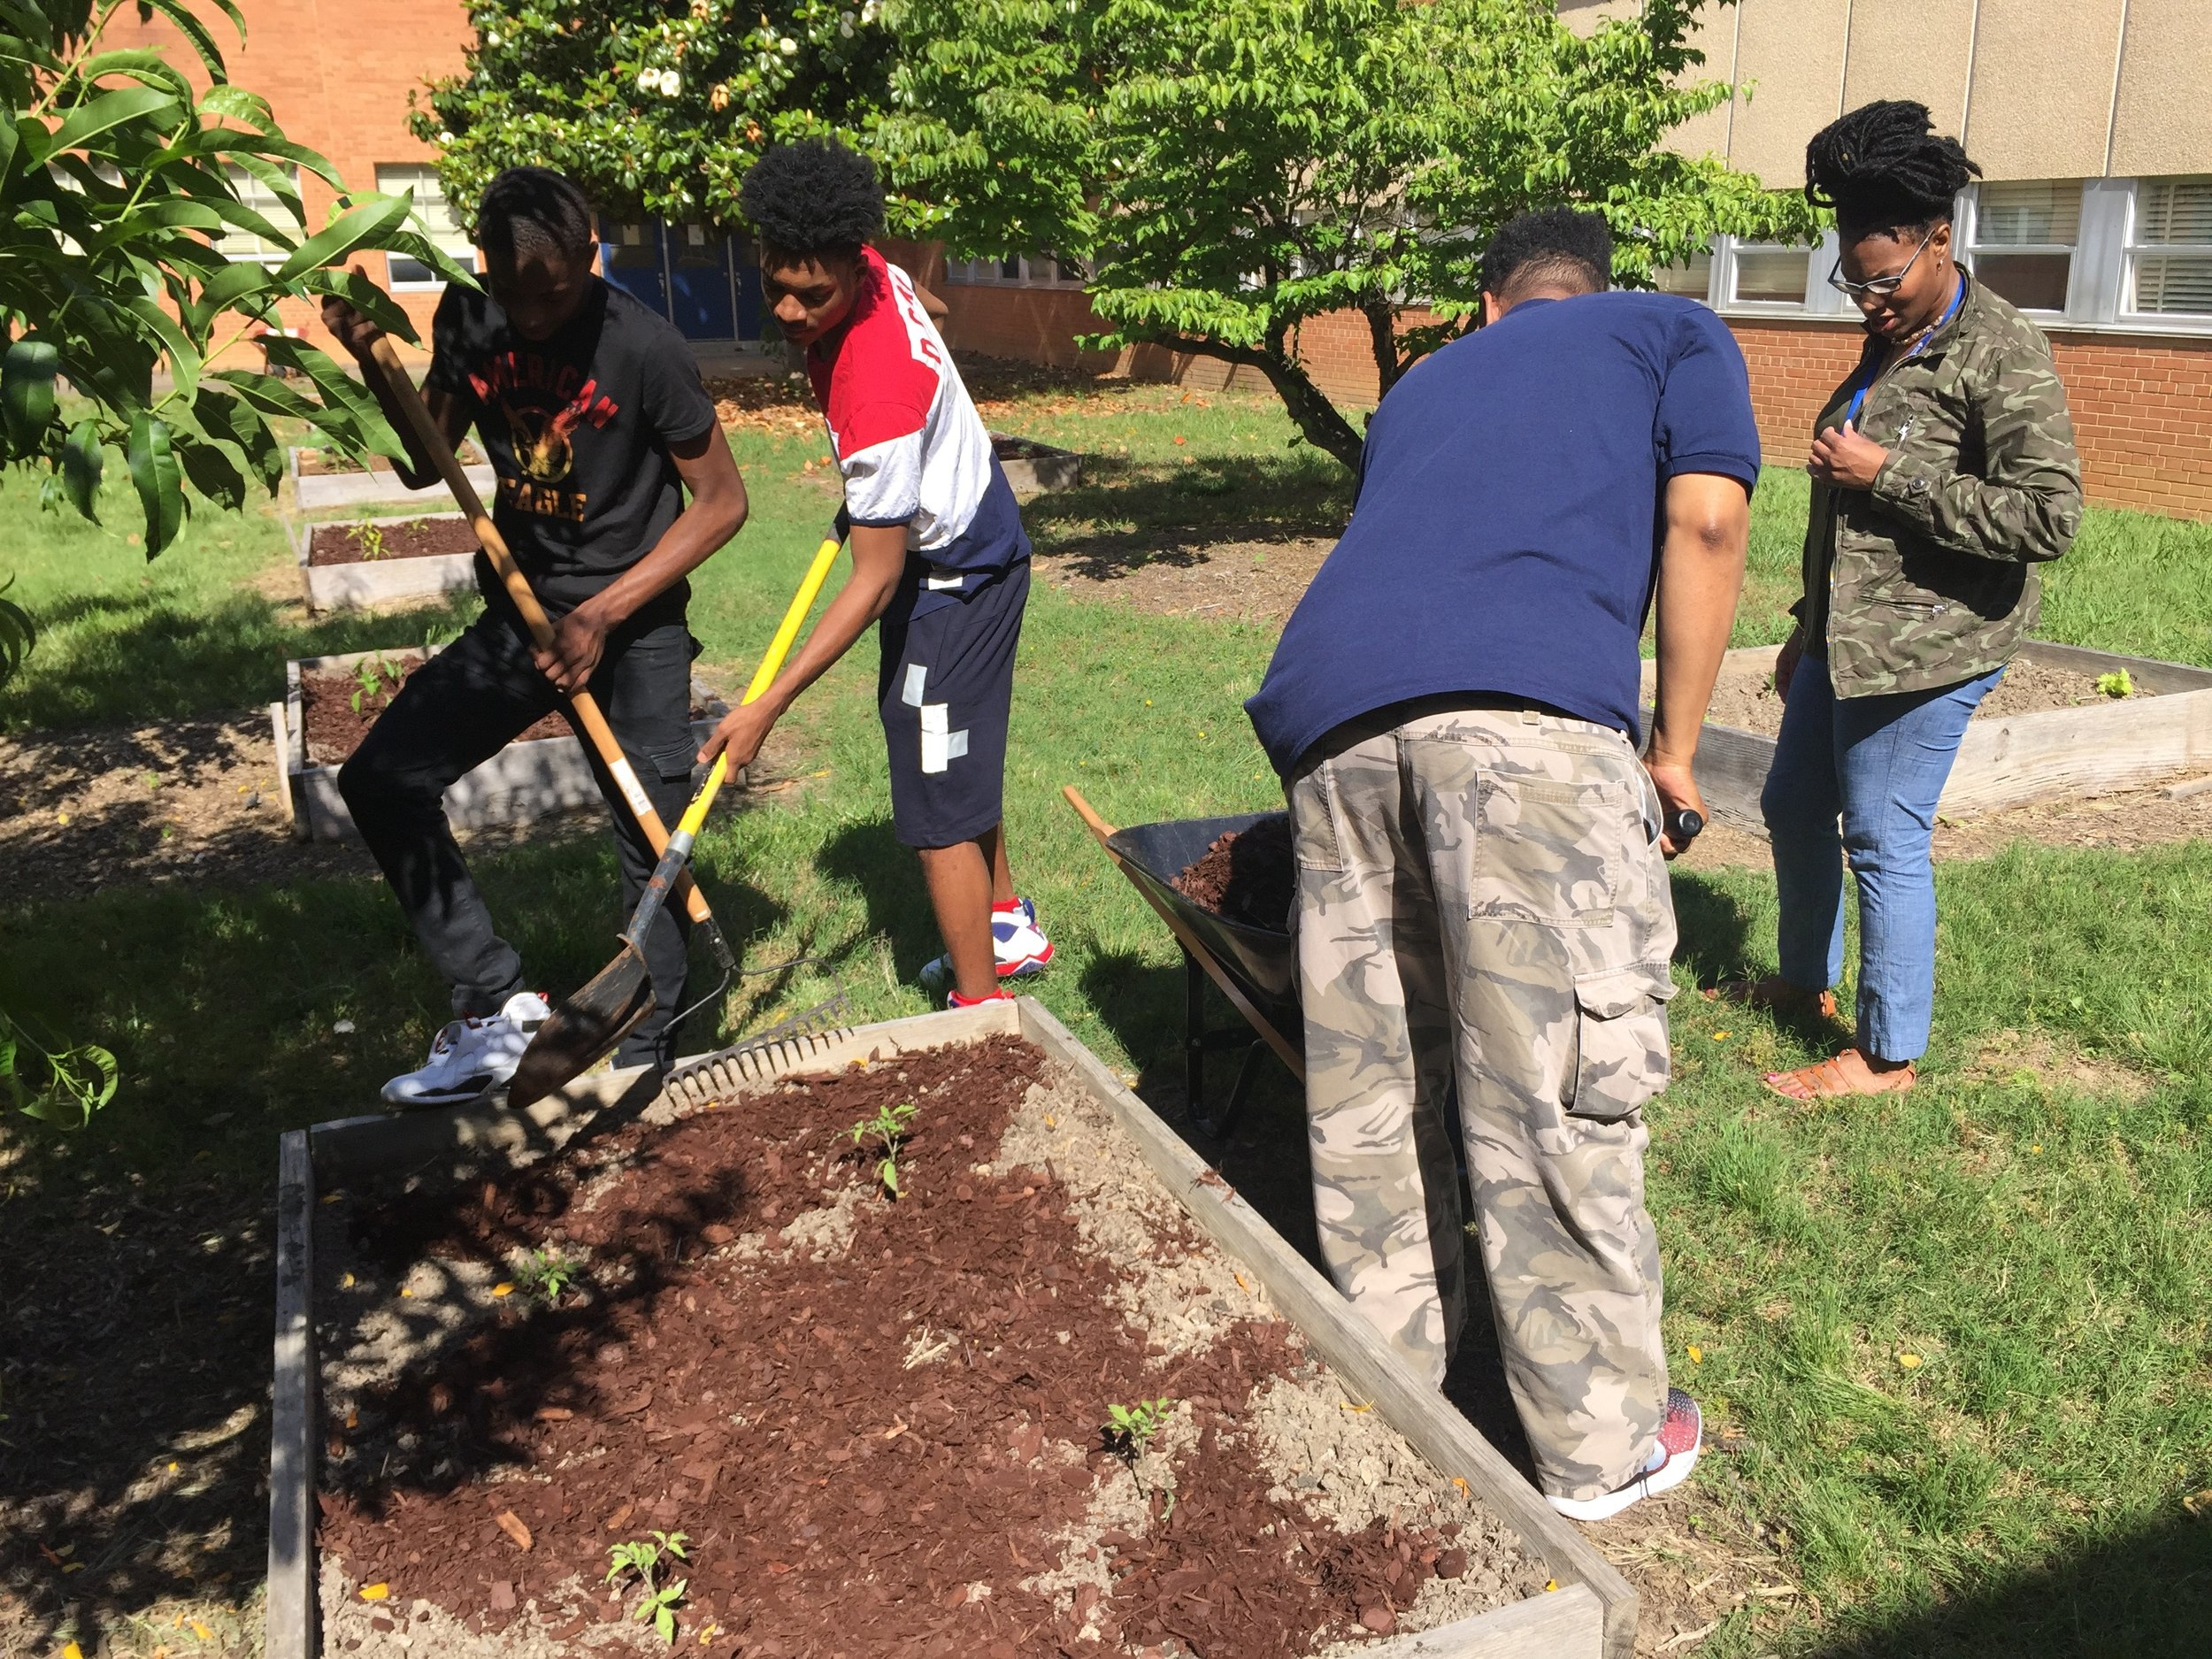 Members of the George Wythe High School basketball team take time to mulch raised beds in the school courtyard, 2017